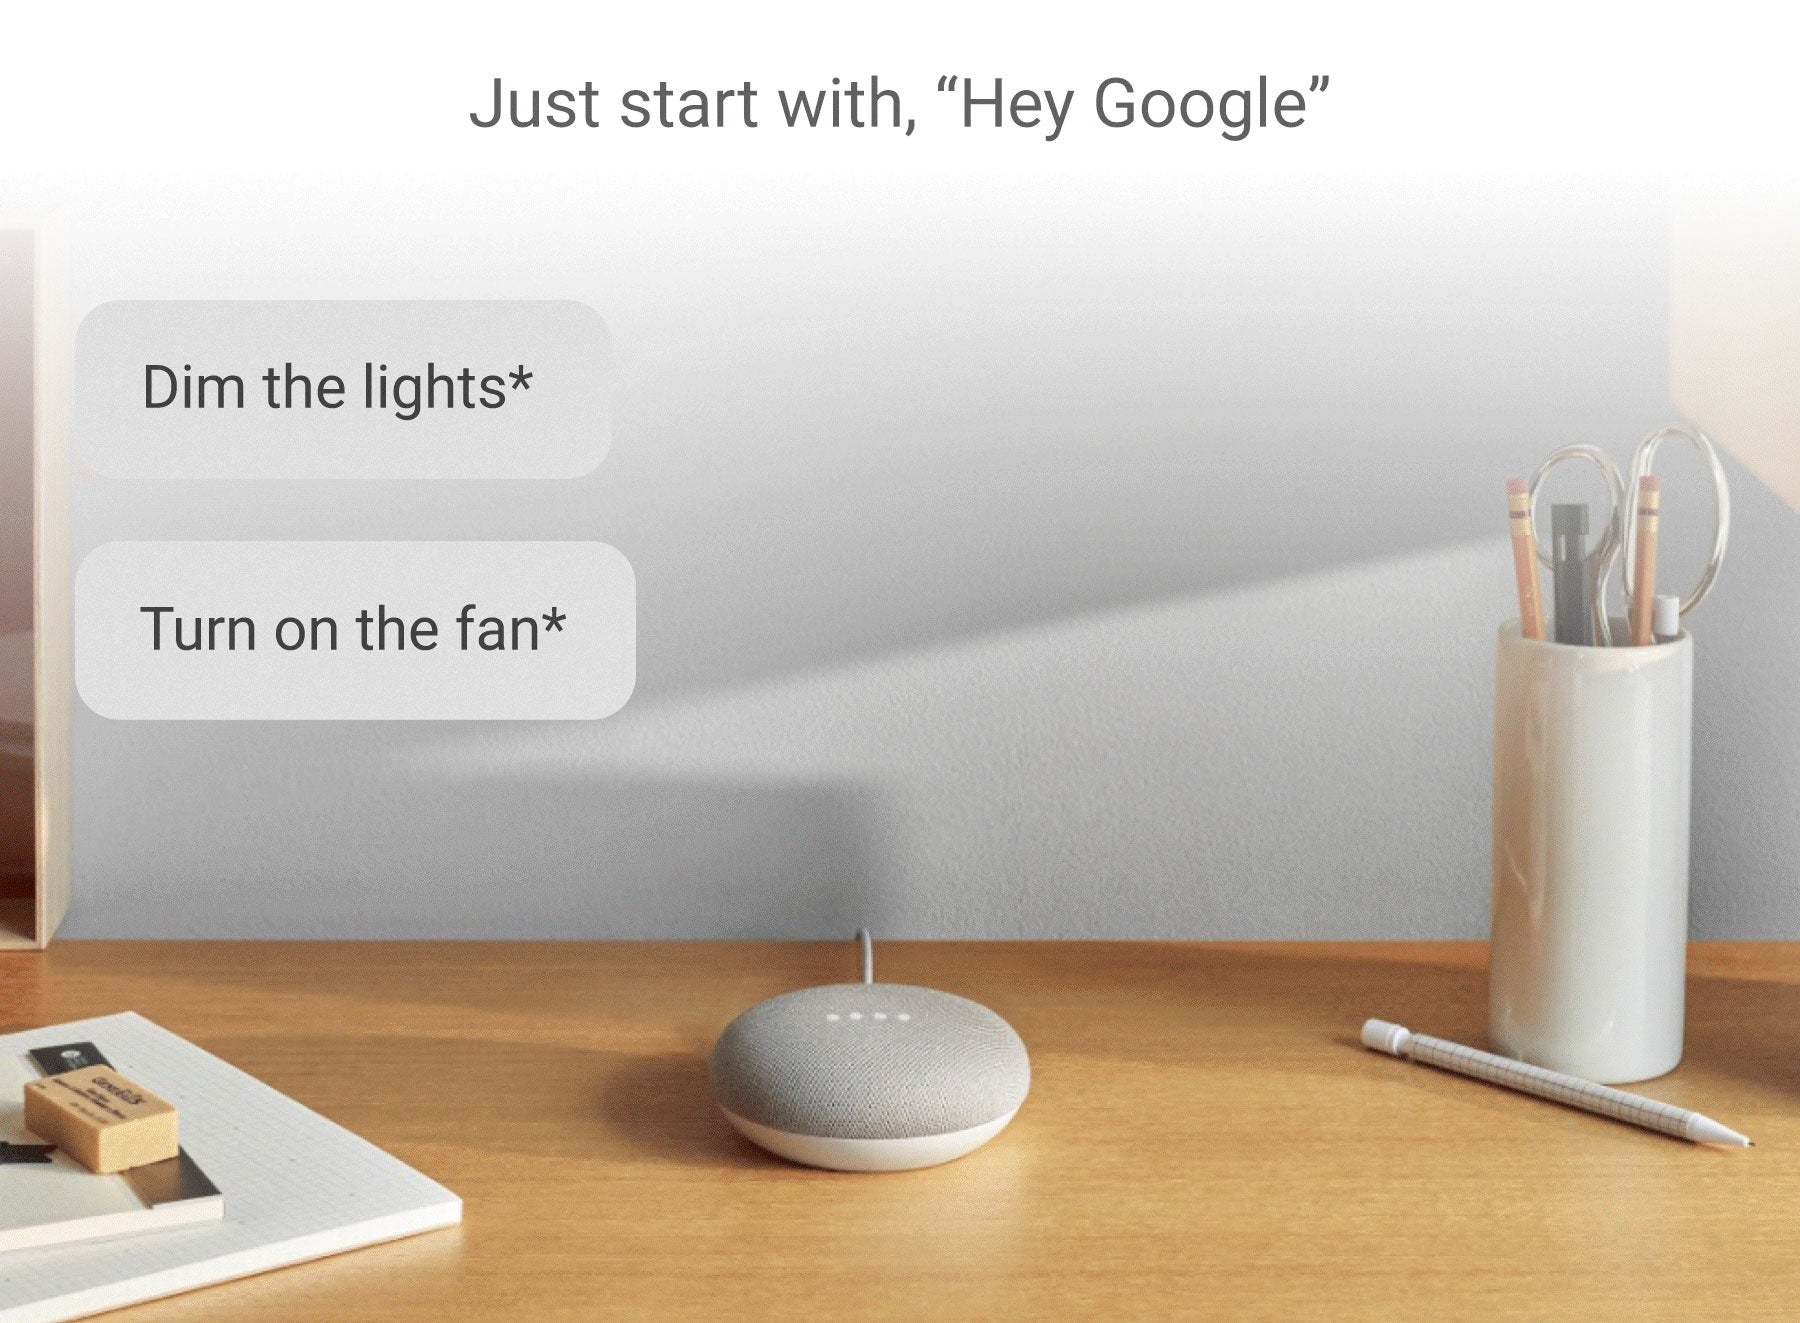 Get ready to let Google control your Smart Home - Wirefree